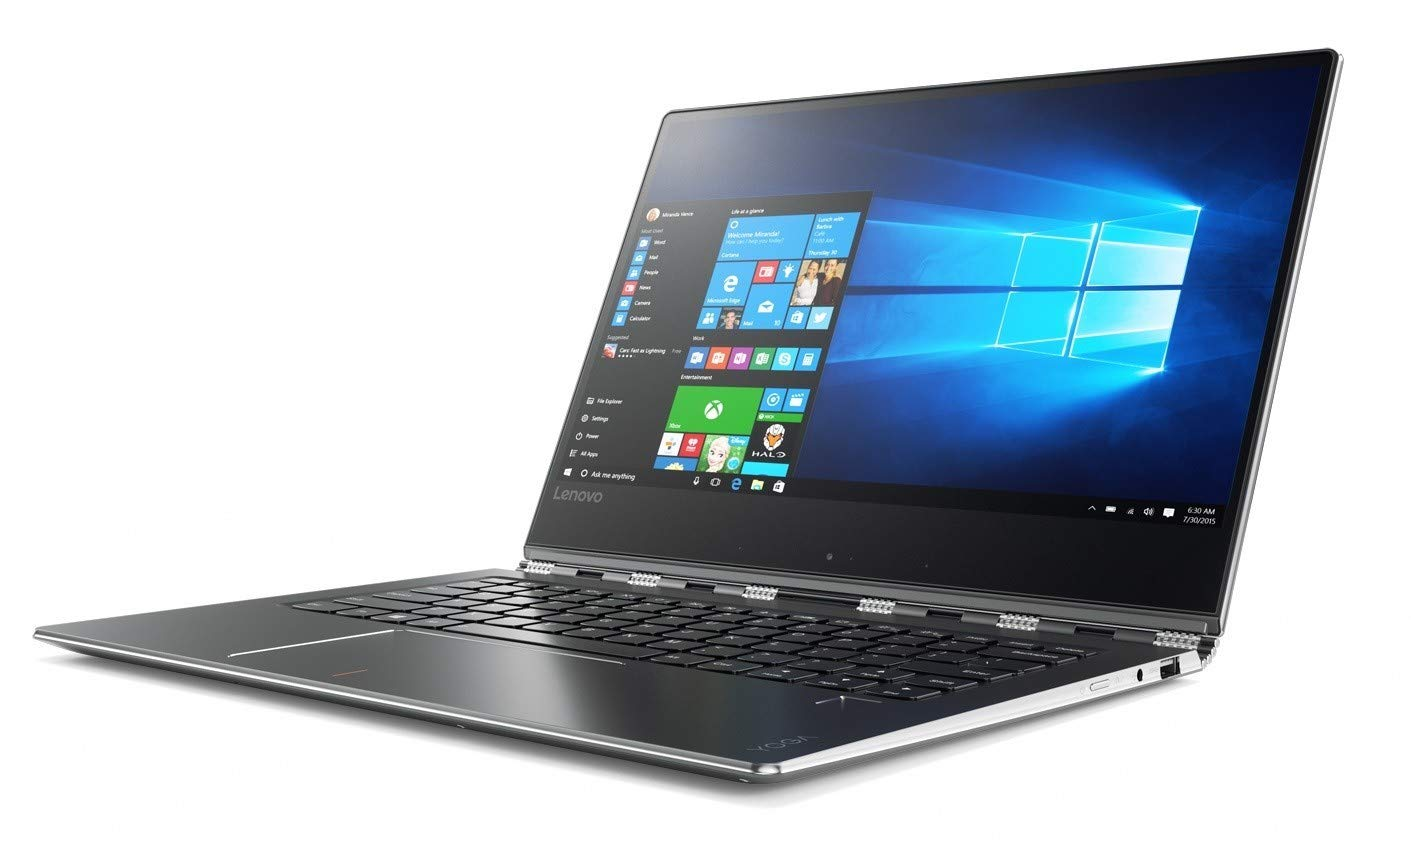 Amazon.com: 2017 Lenovo Yoga 910 – 14